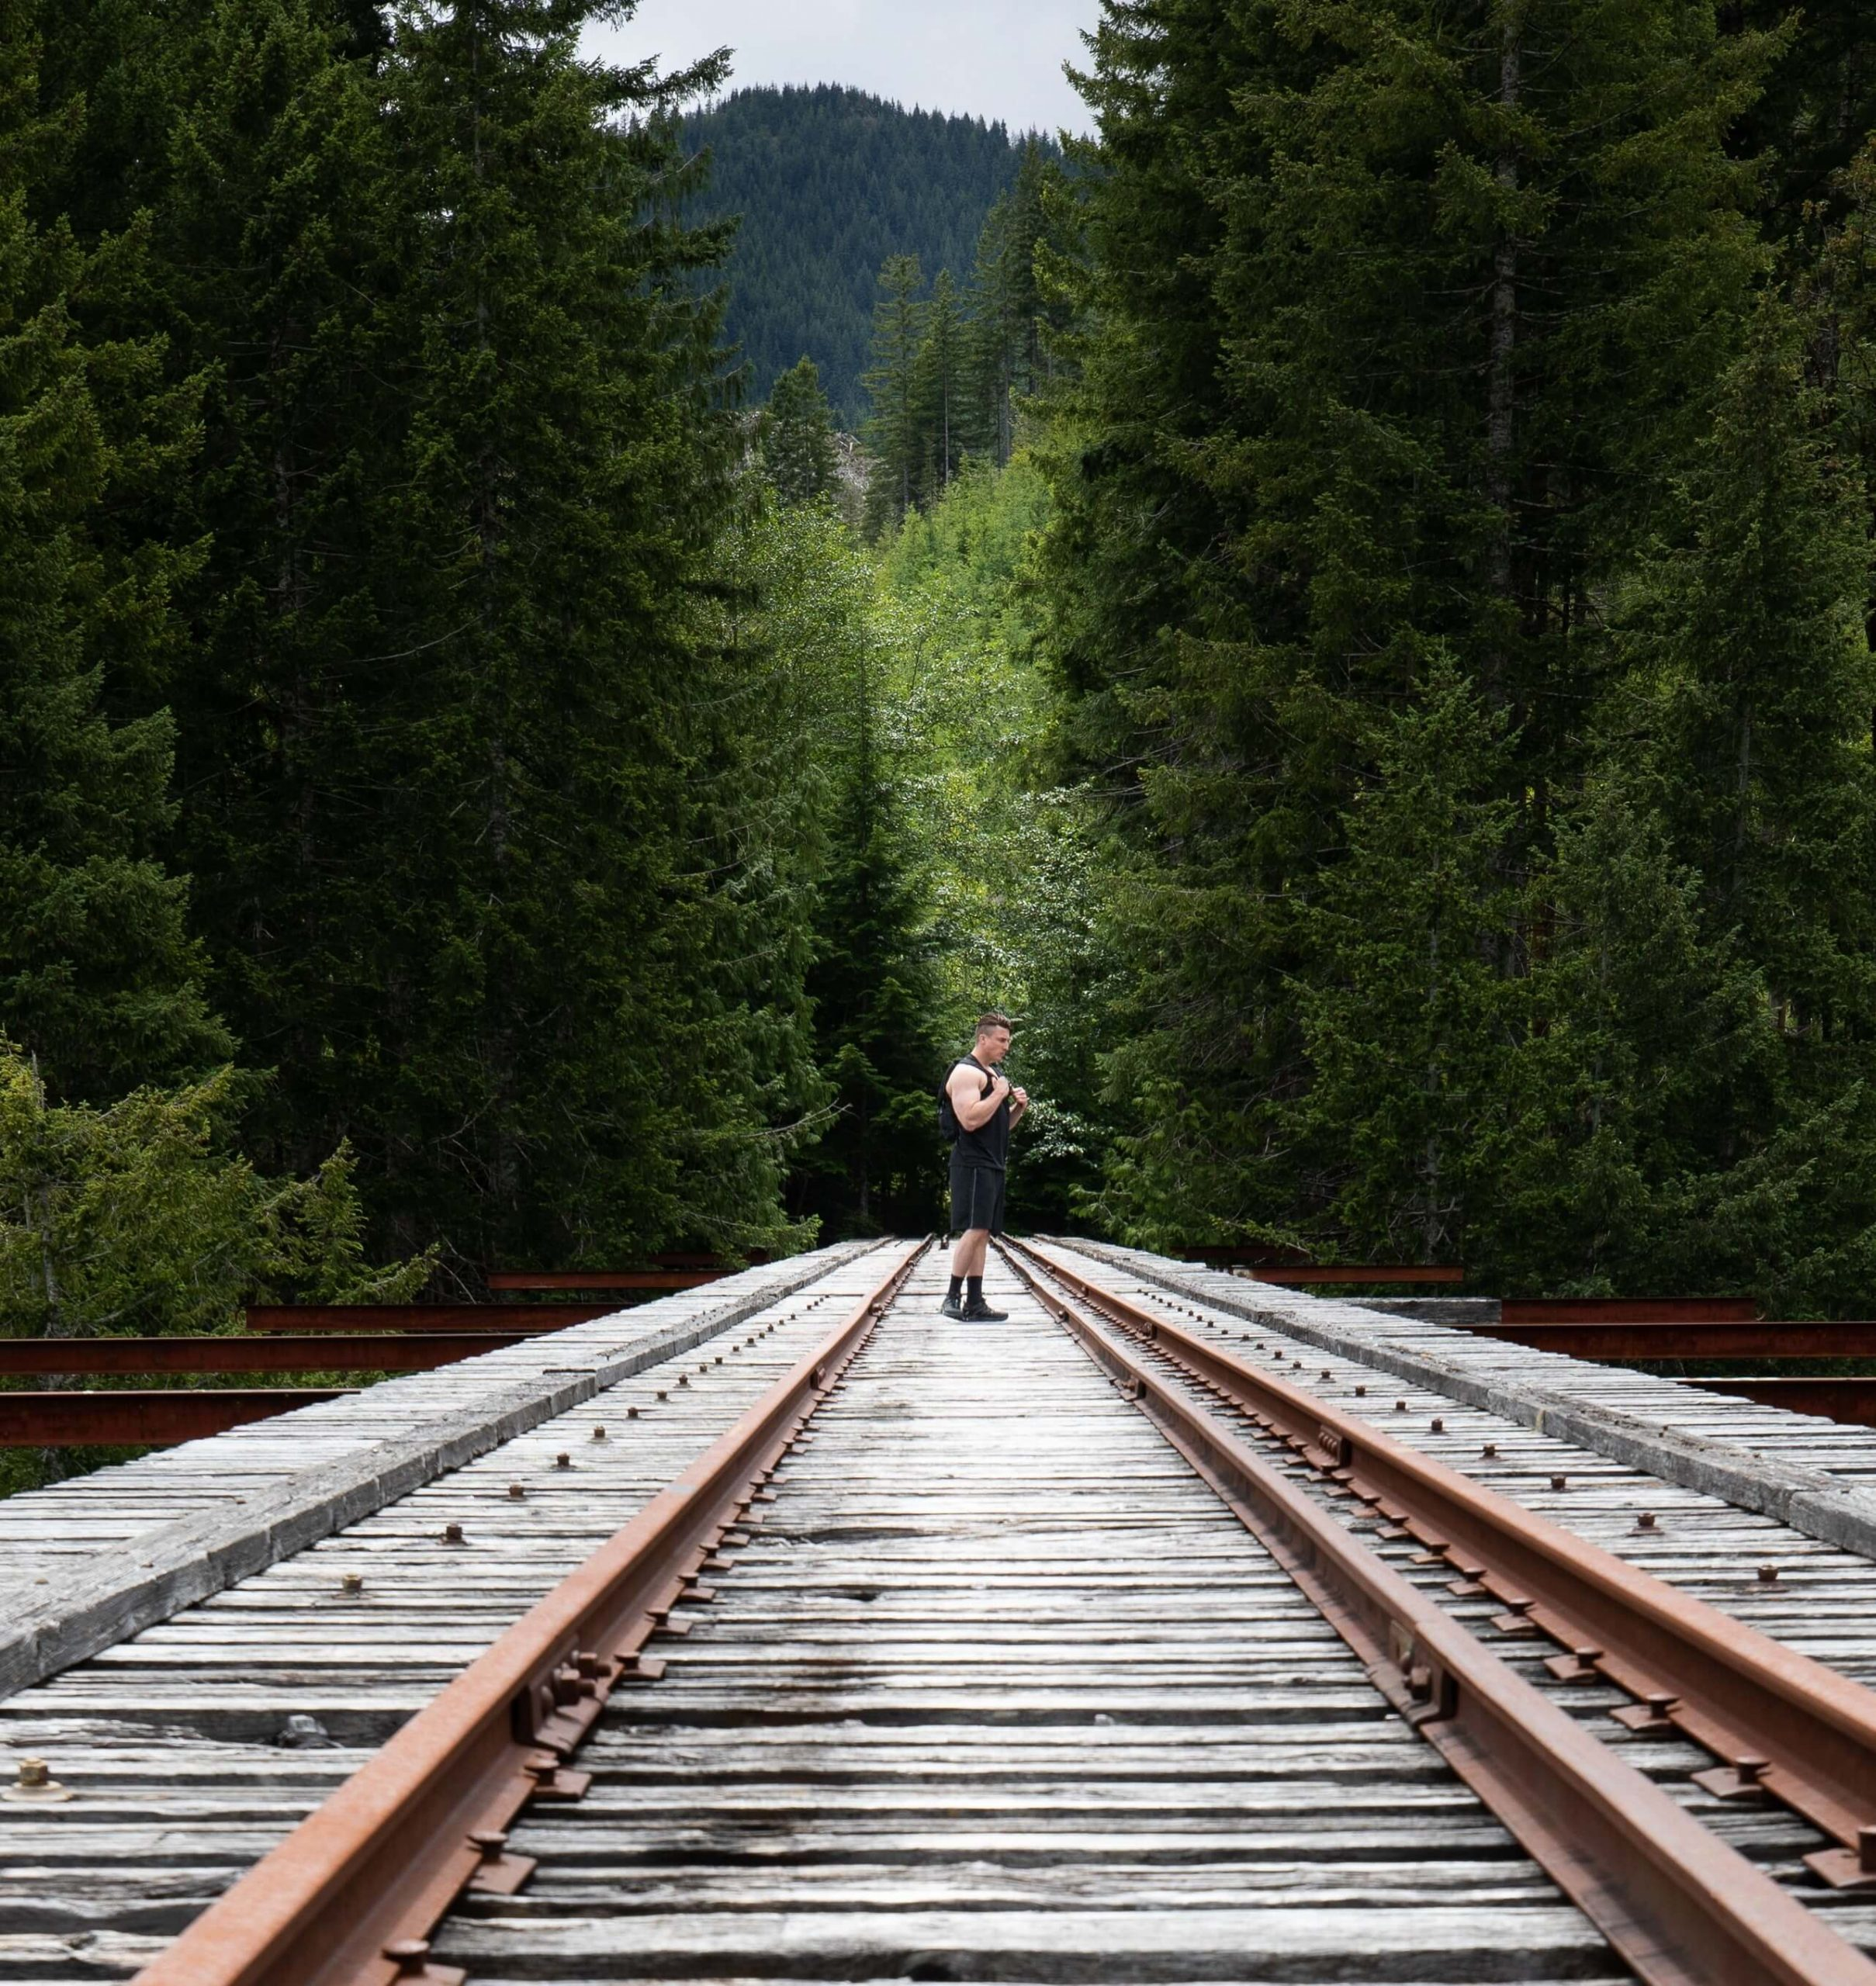 person-in-the-middle-of-railway-2304793 (1)